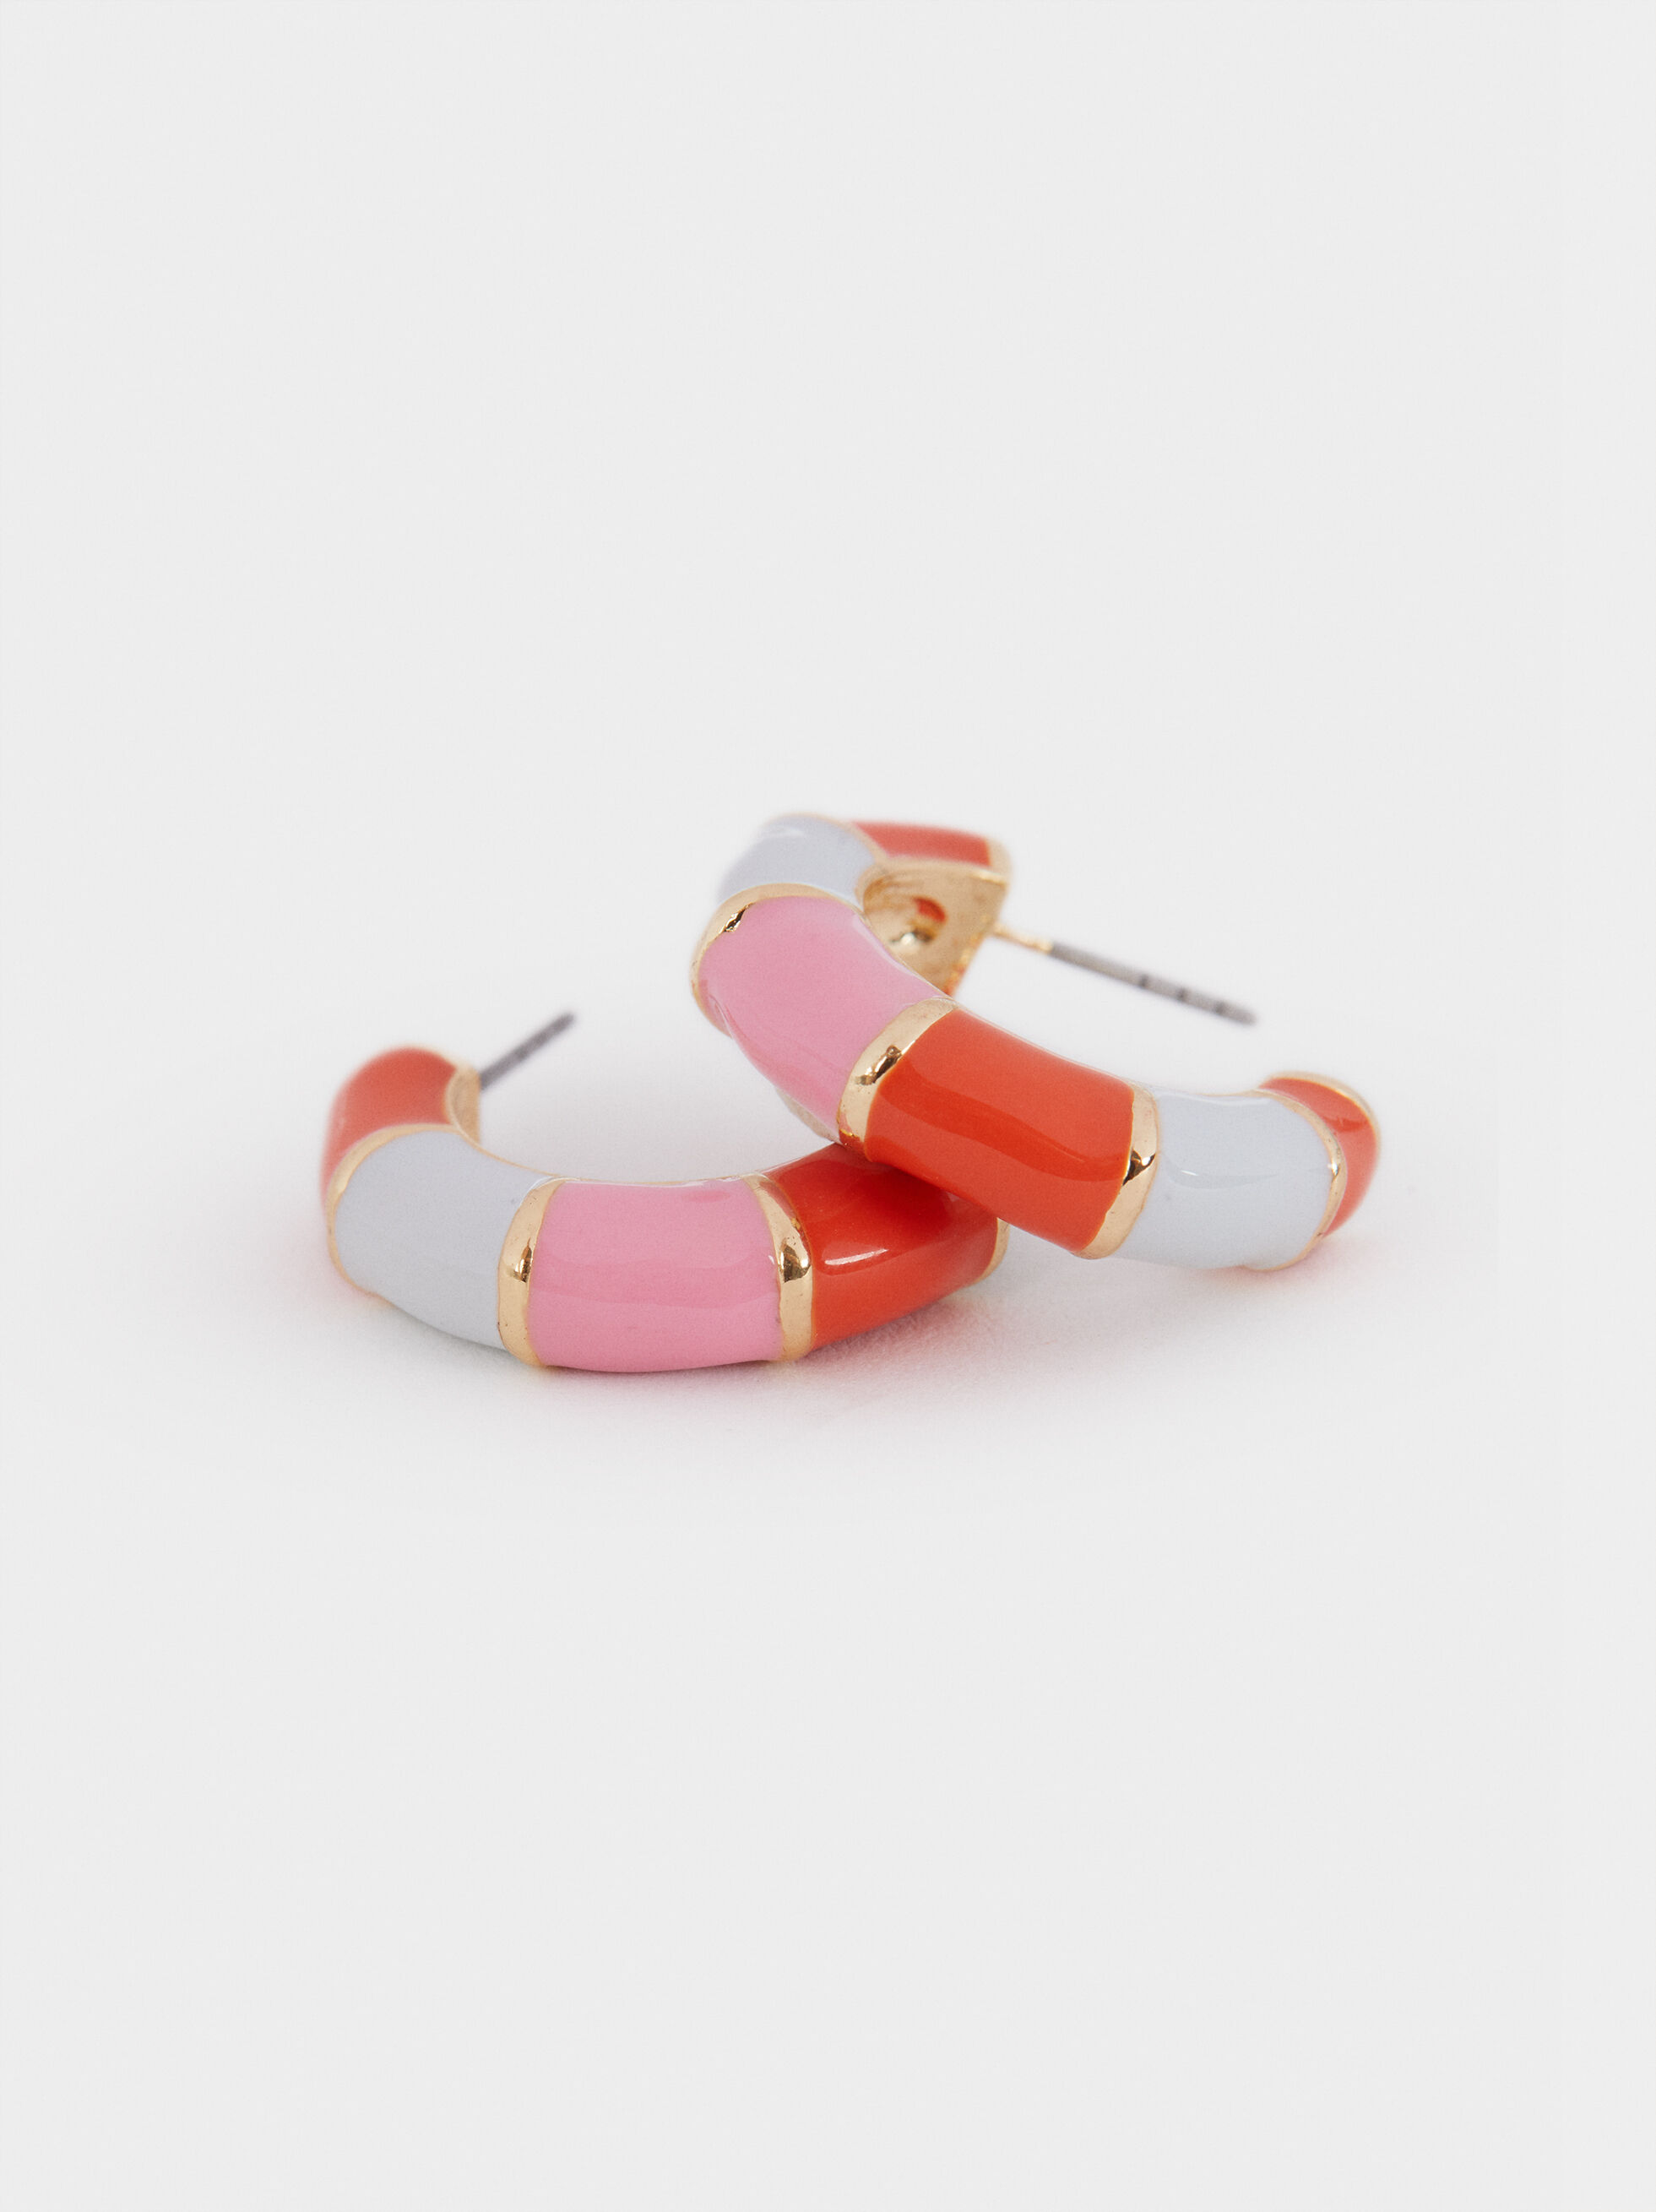 Small Multicolored Hoop Earrings, Multicolor, hi-res